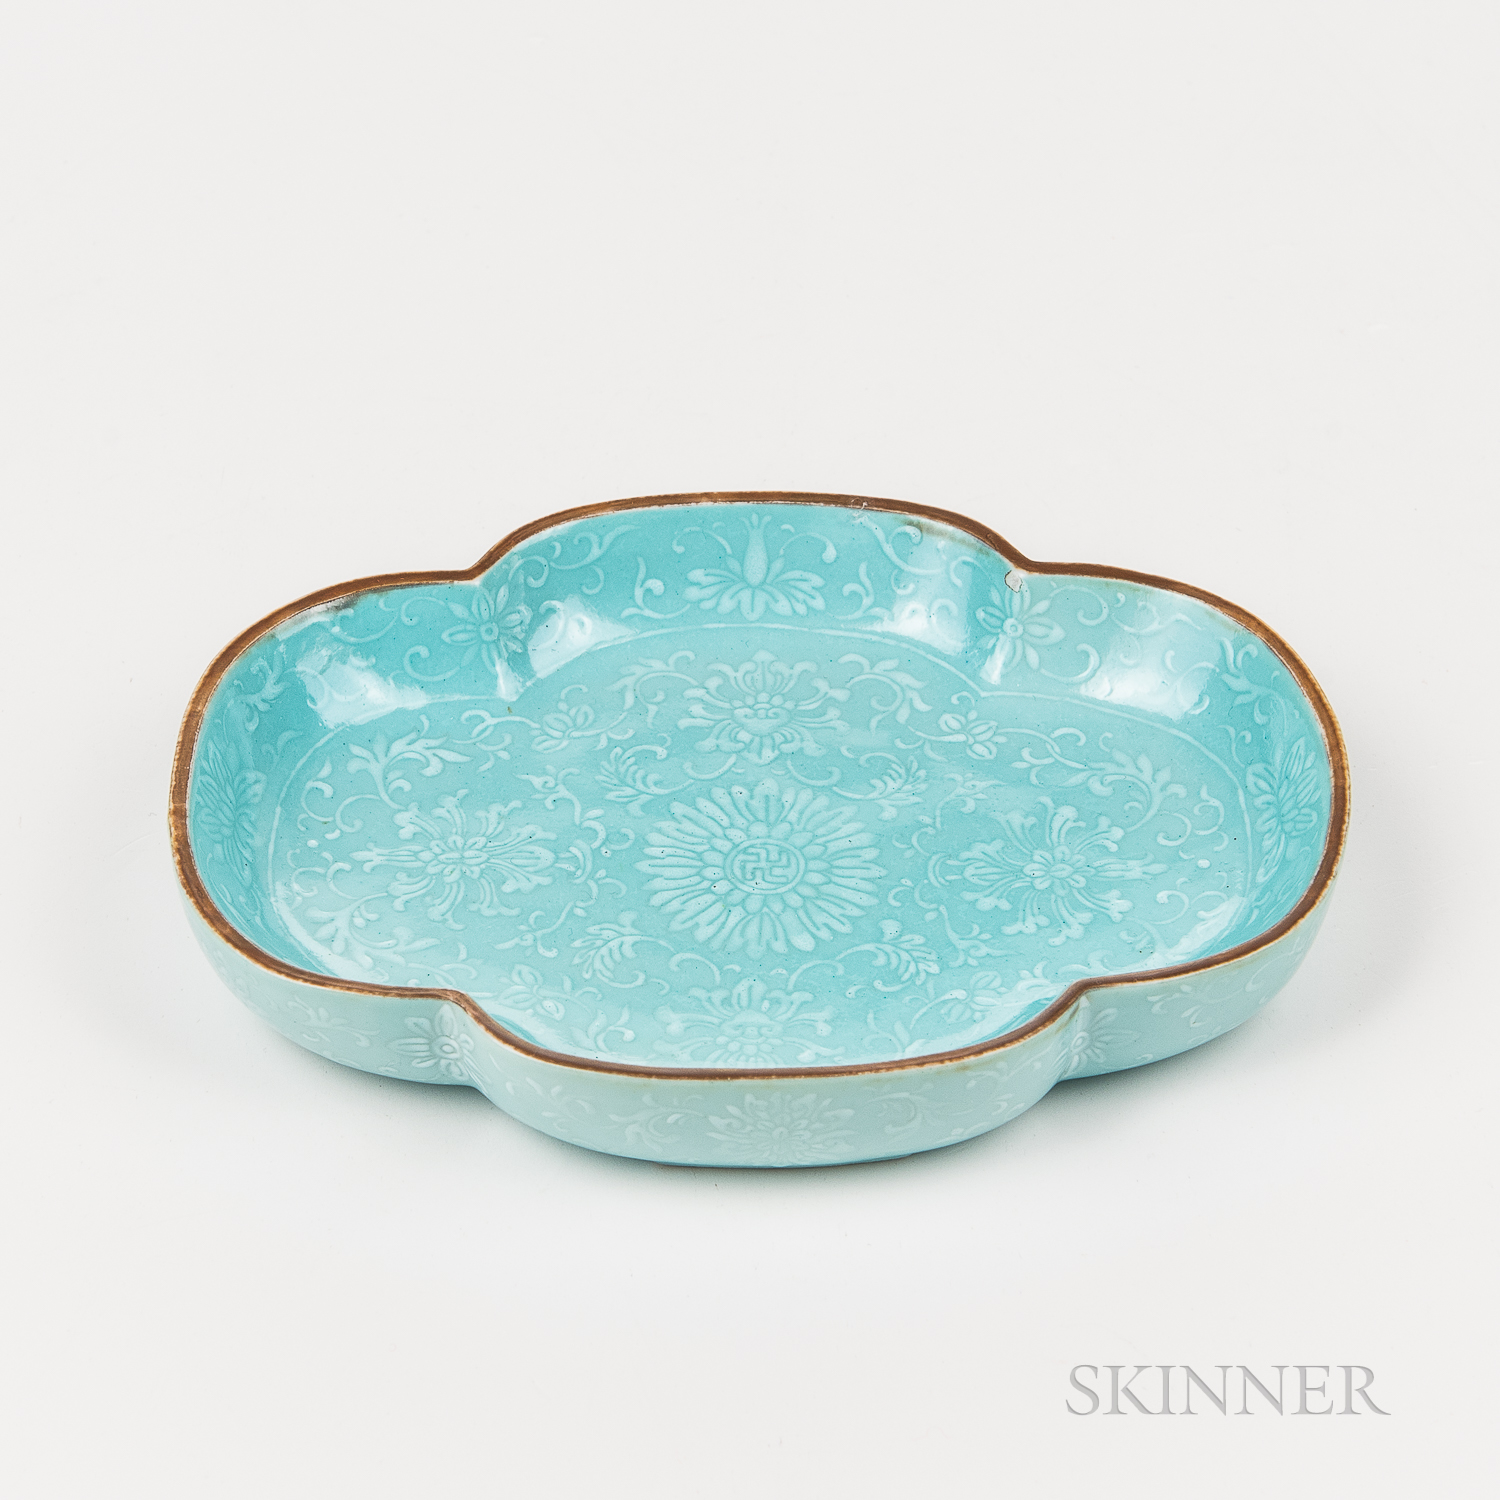 Turquoise Blue-glazed Dish with White Slip Decoration